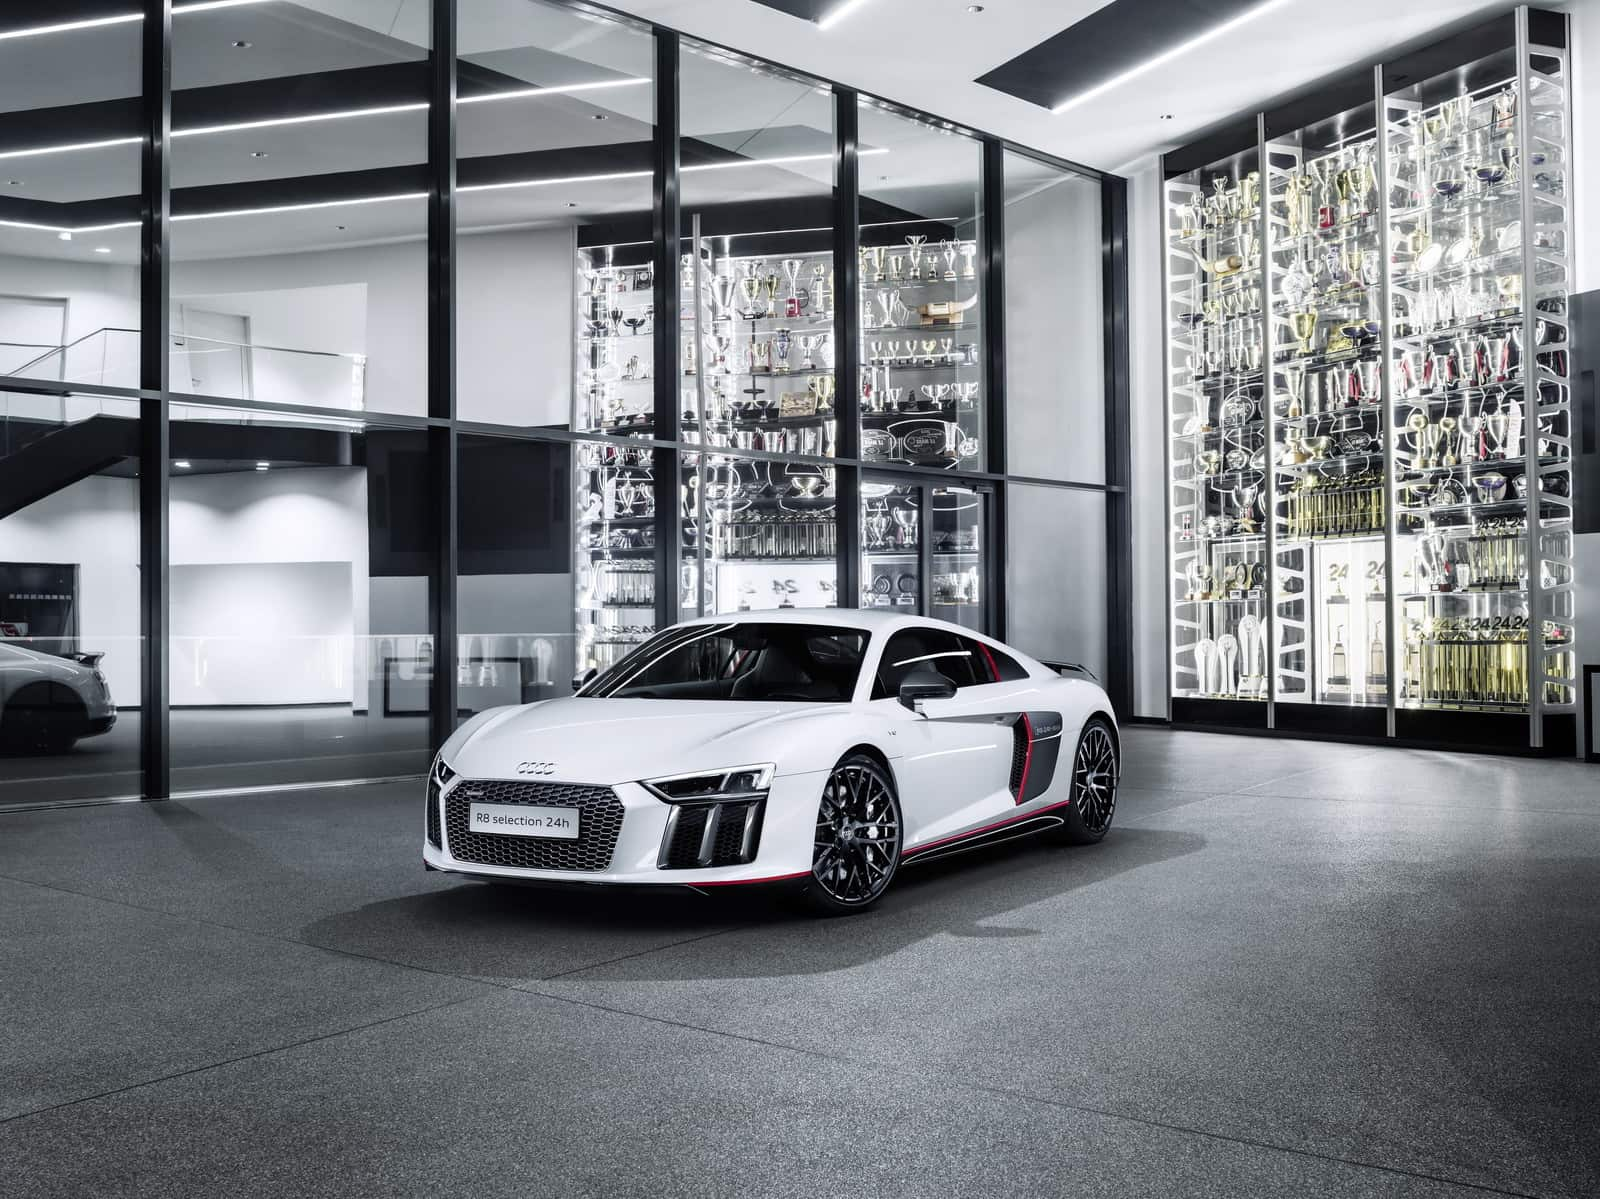 The Audi R8 Coupe V10 Plus Selection 24h Edition